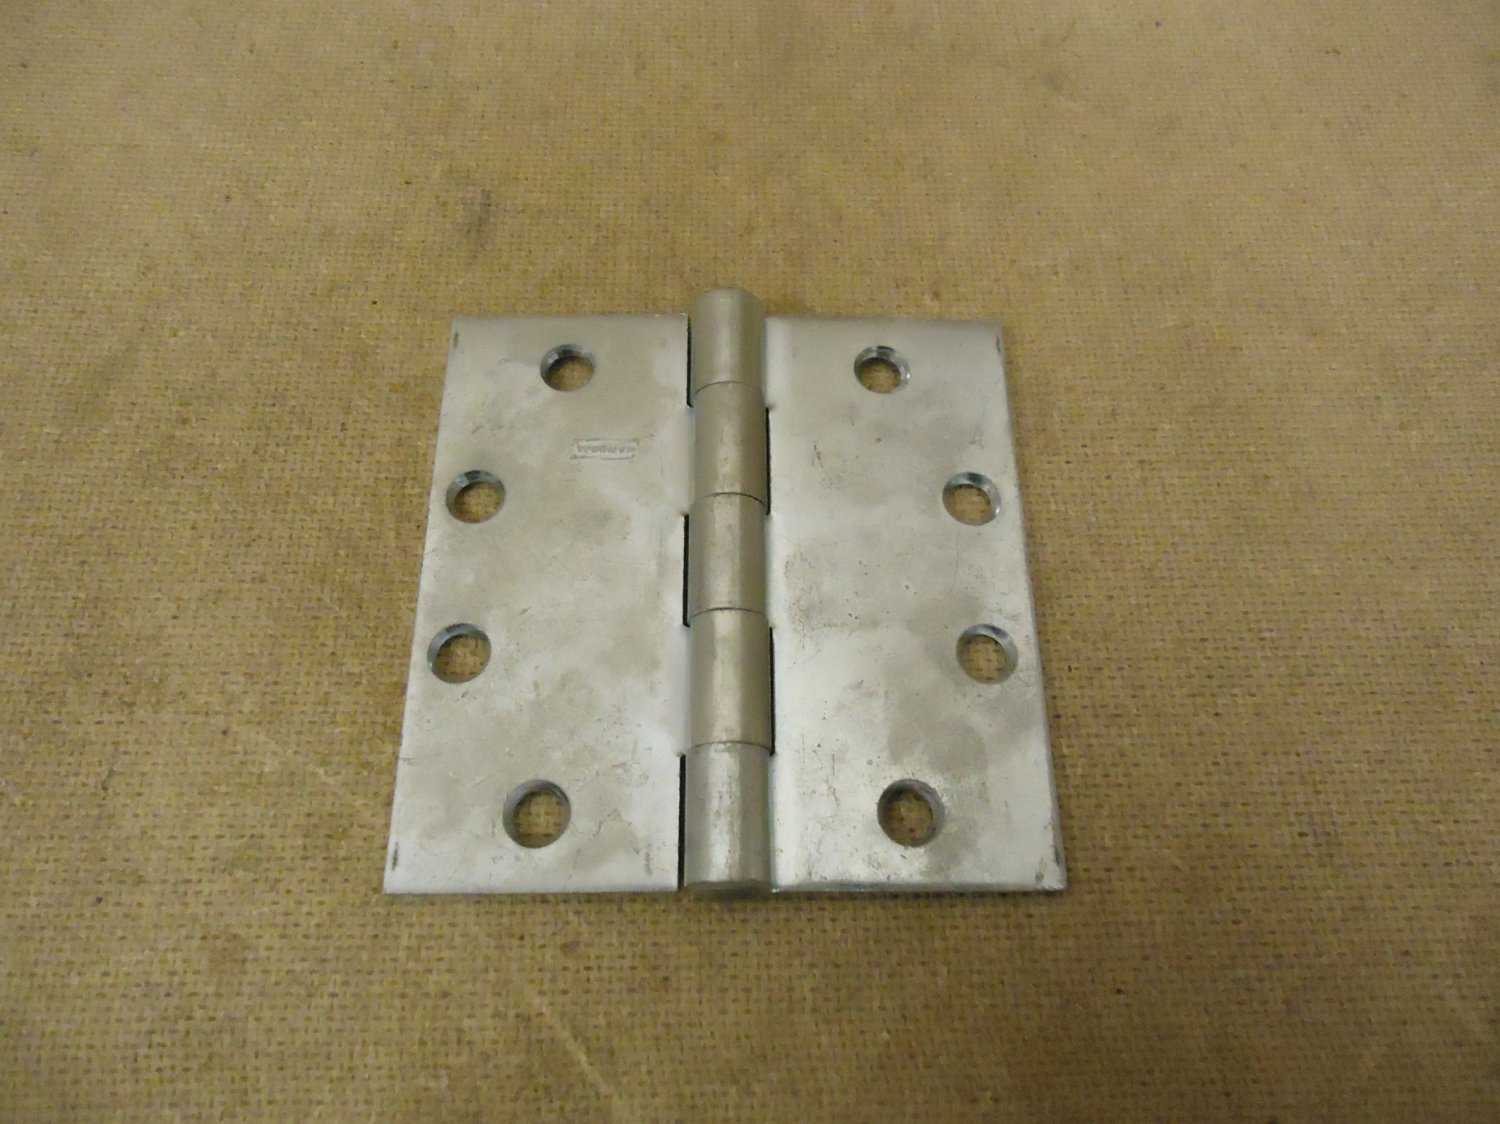 National Door Hinge 4 1/2in H x 2in W Gray Silver 4 Hole Commercial Metal